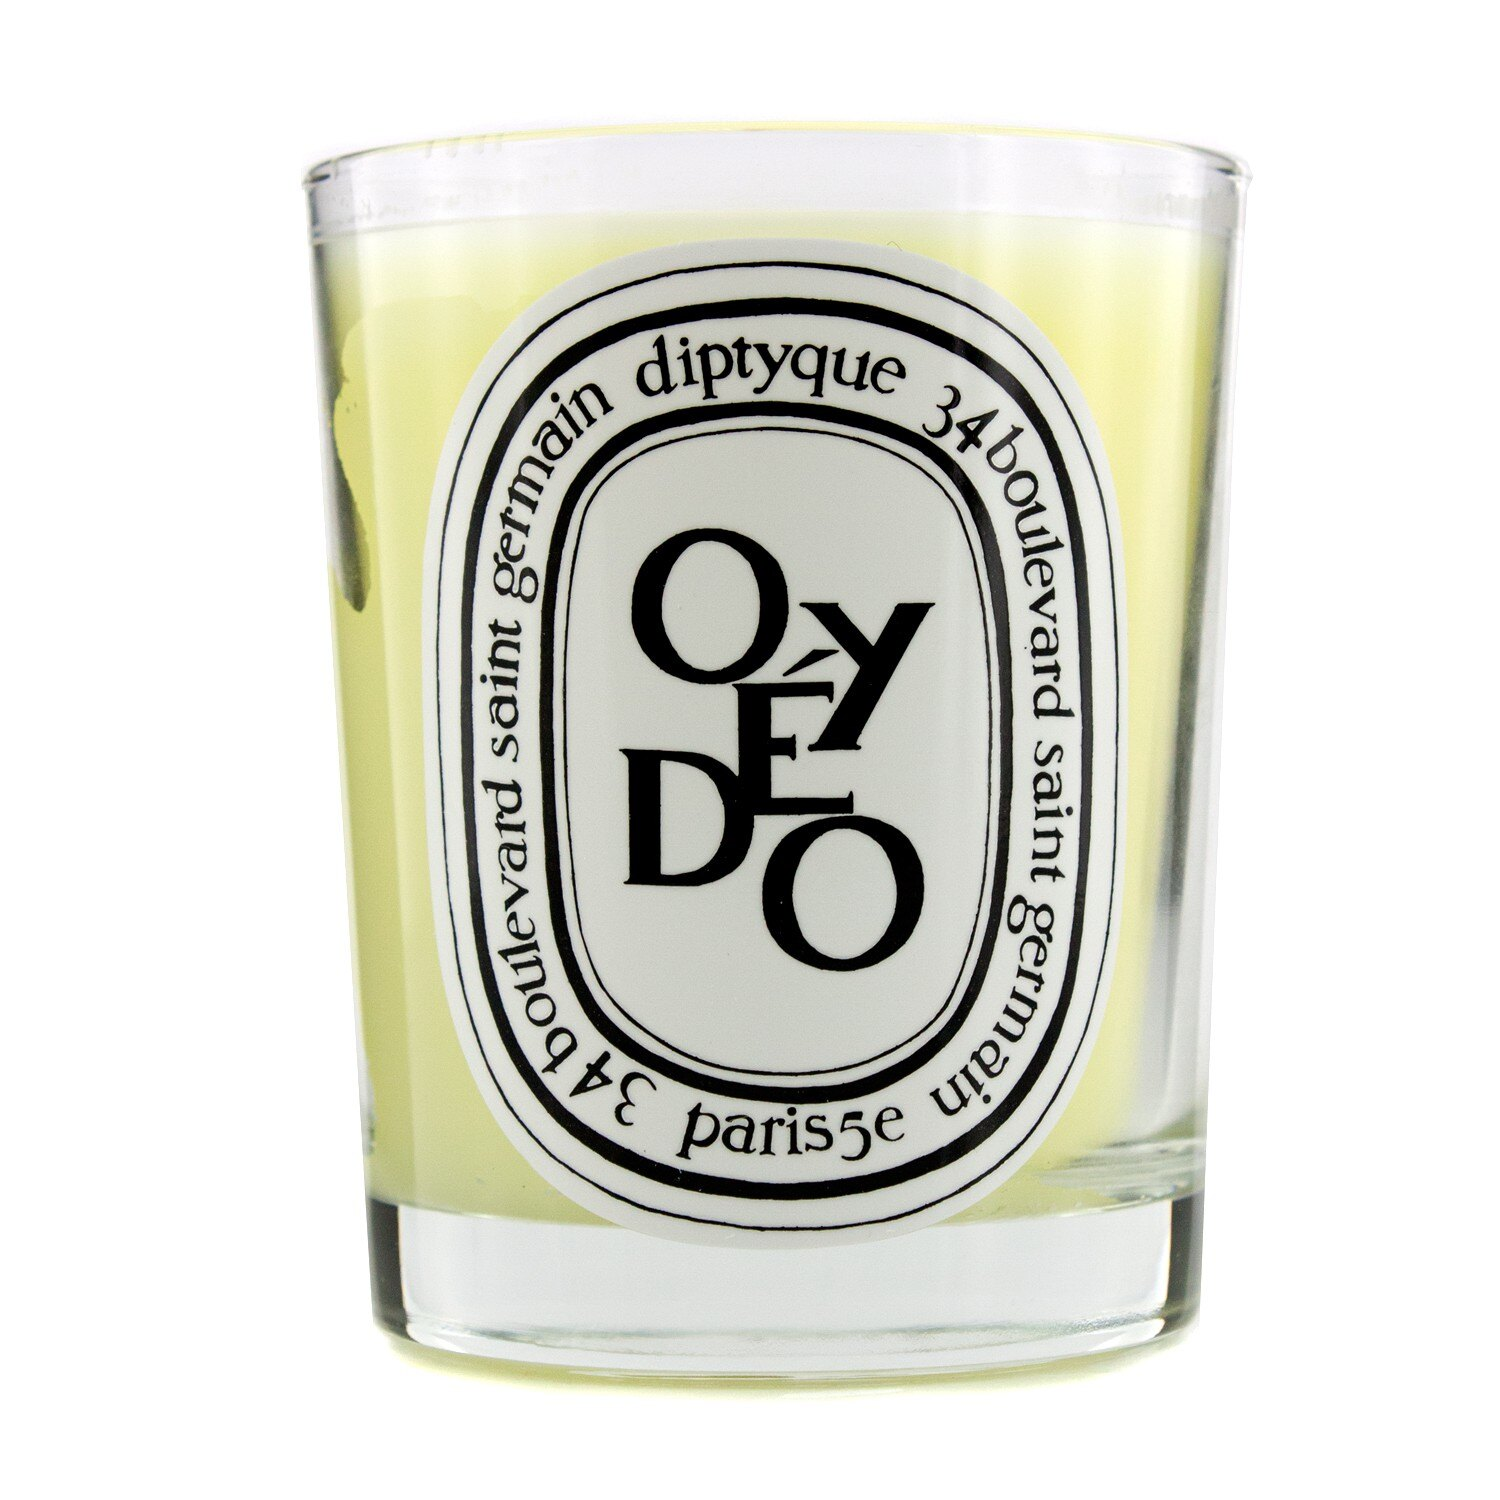 Diptyque - 柑橘 香氛蠟燭 Scented Candle - Oyedo